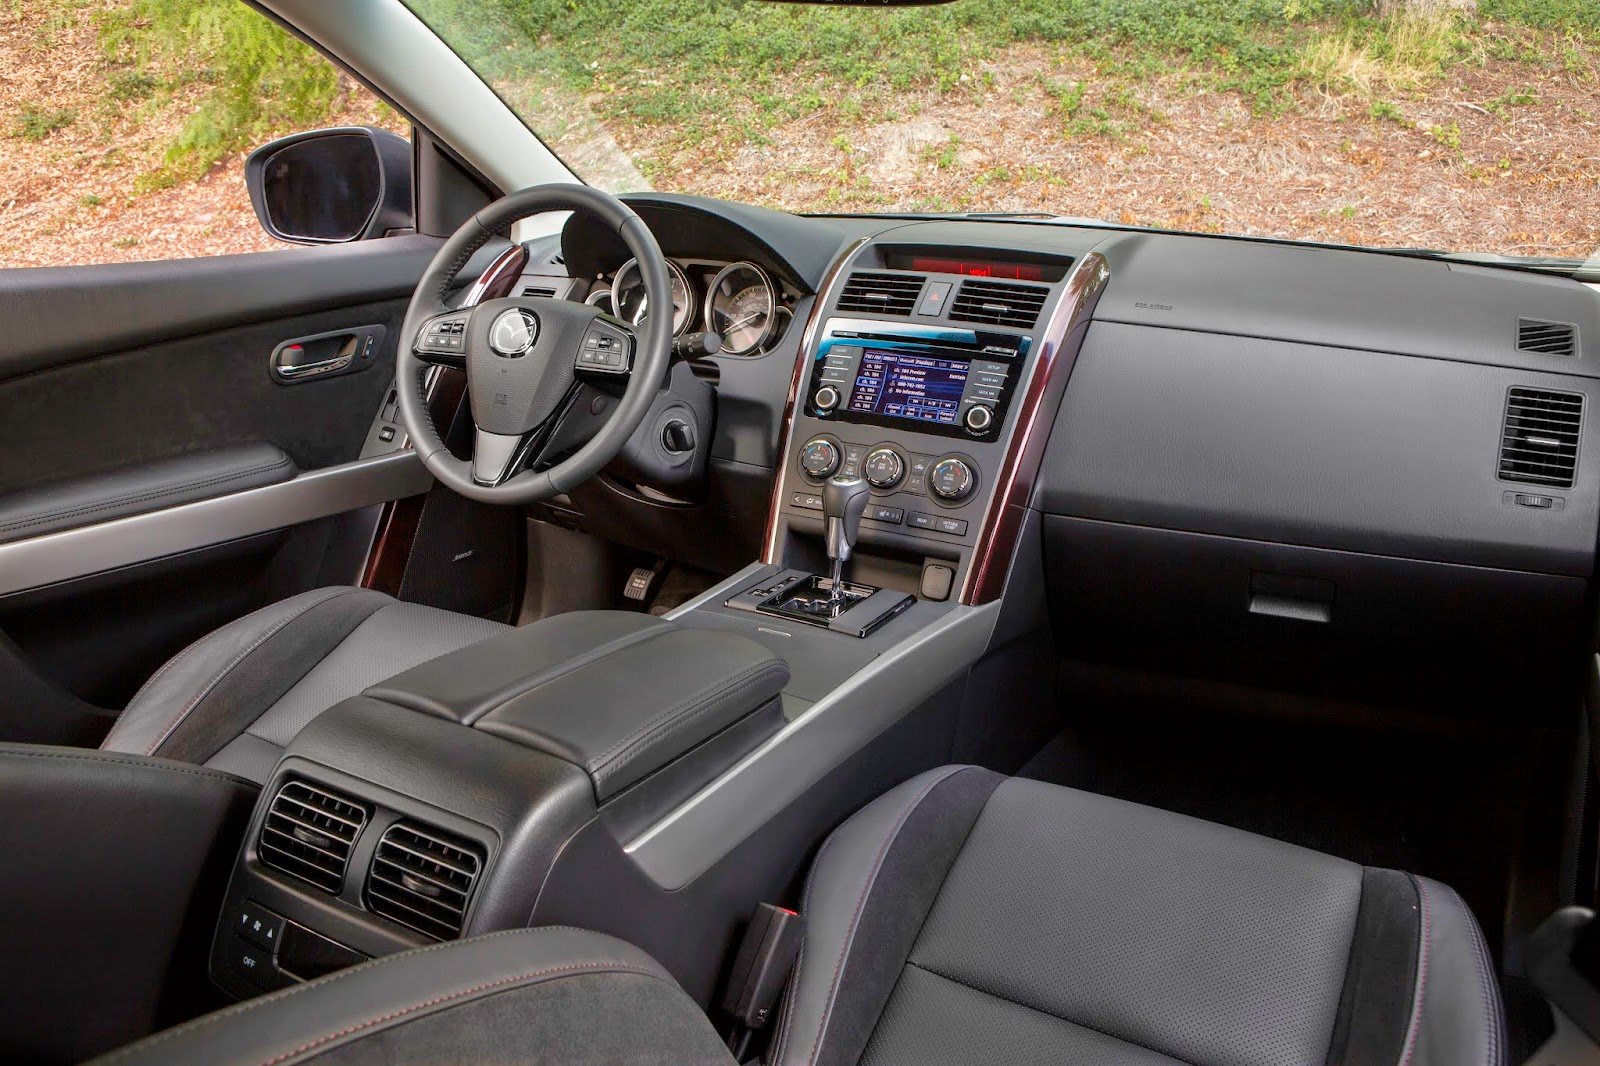 Interior view of 2015 Mazda CX-9.